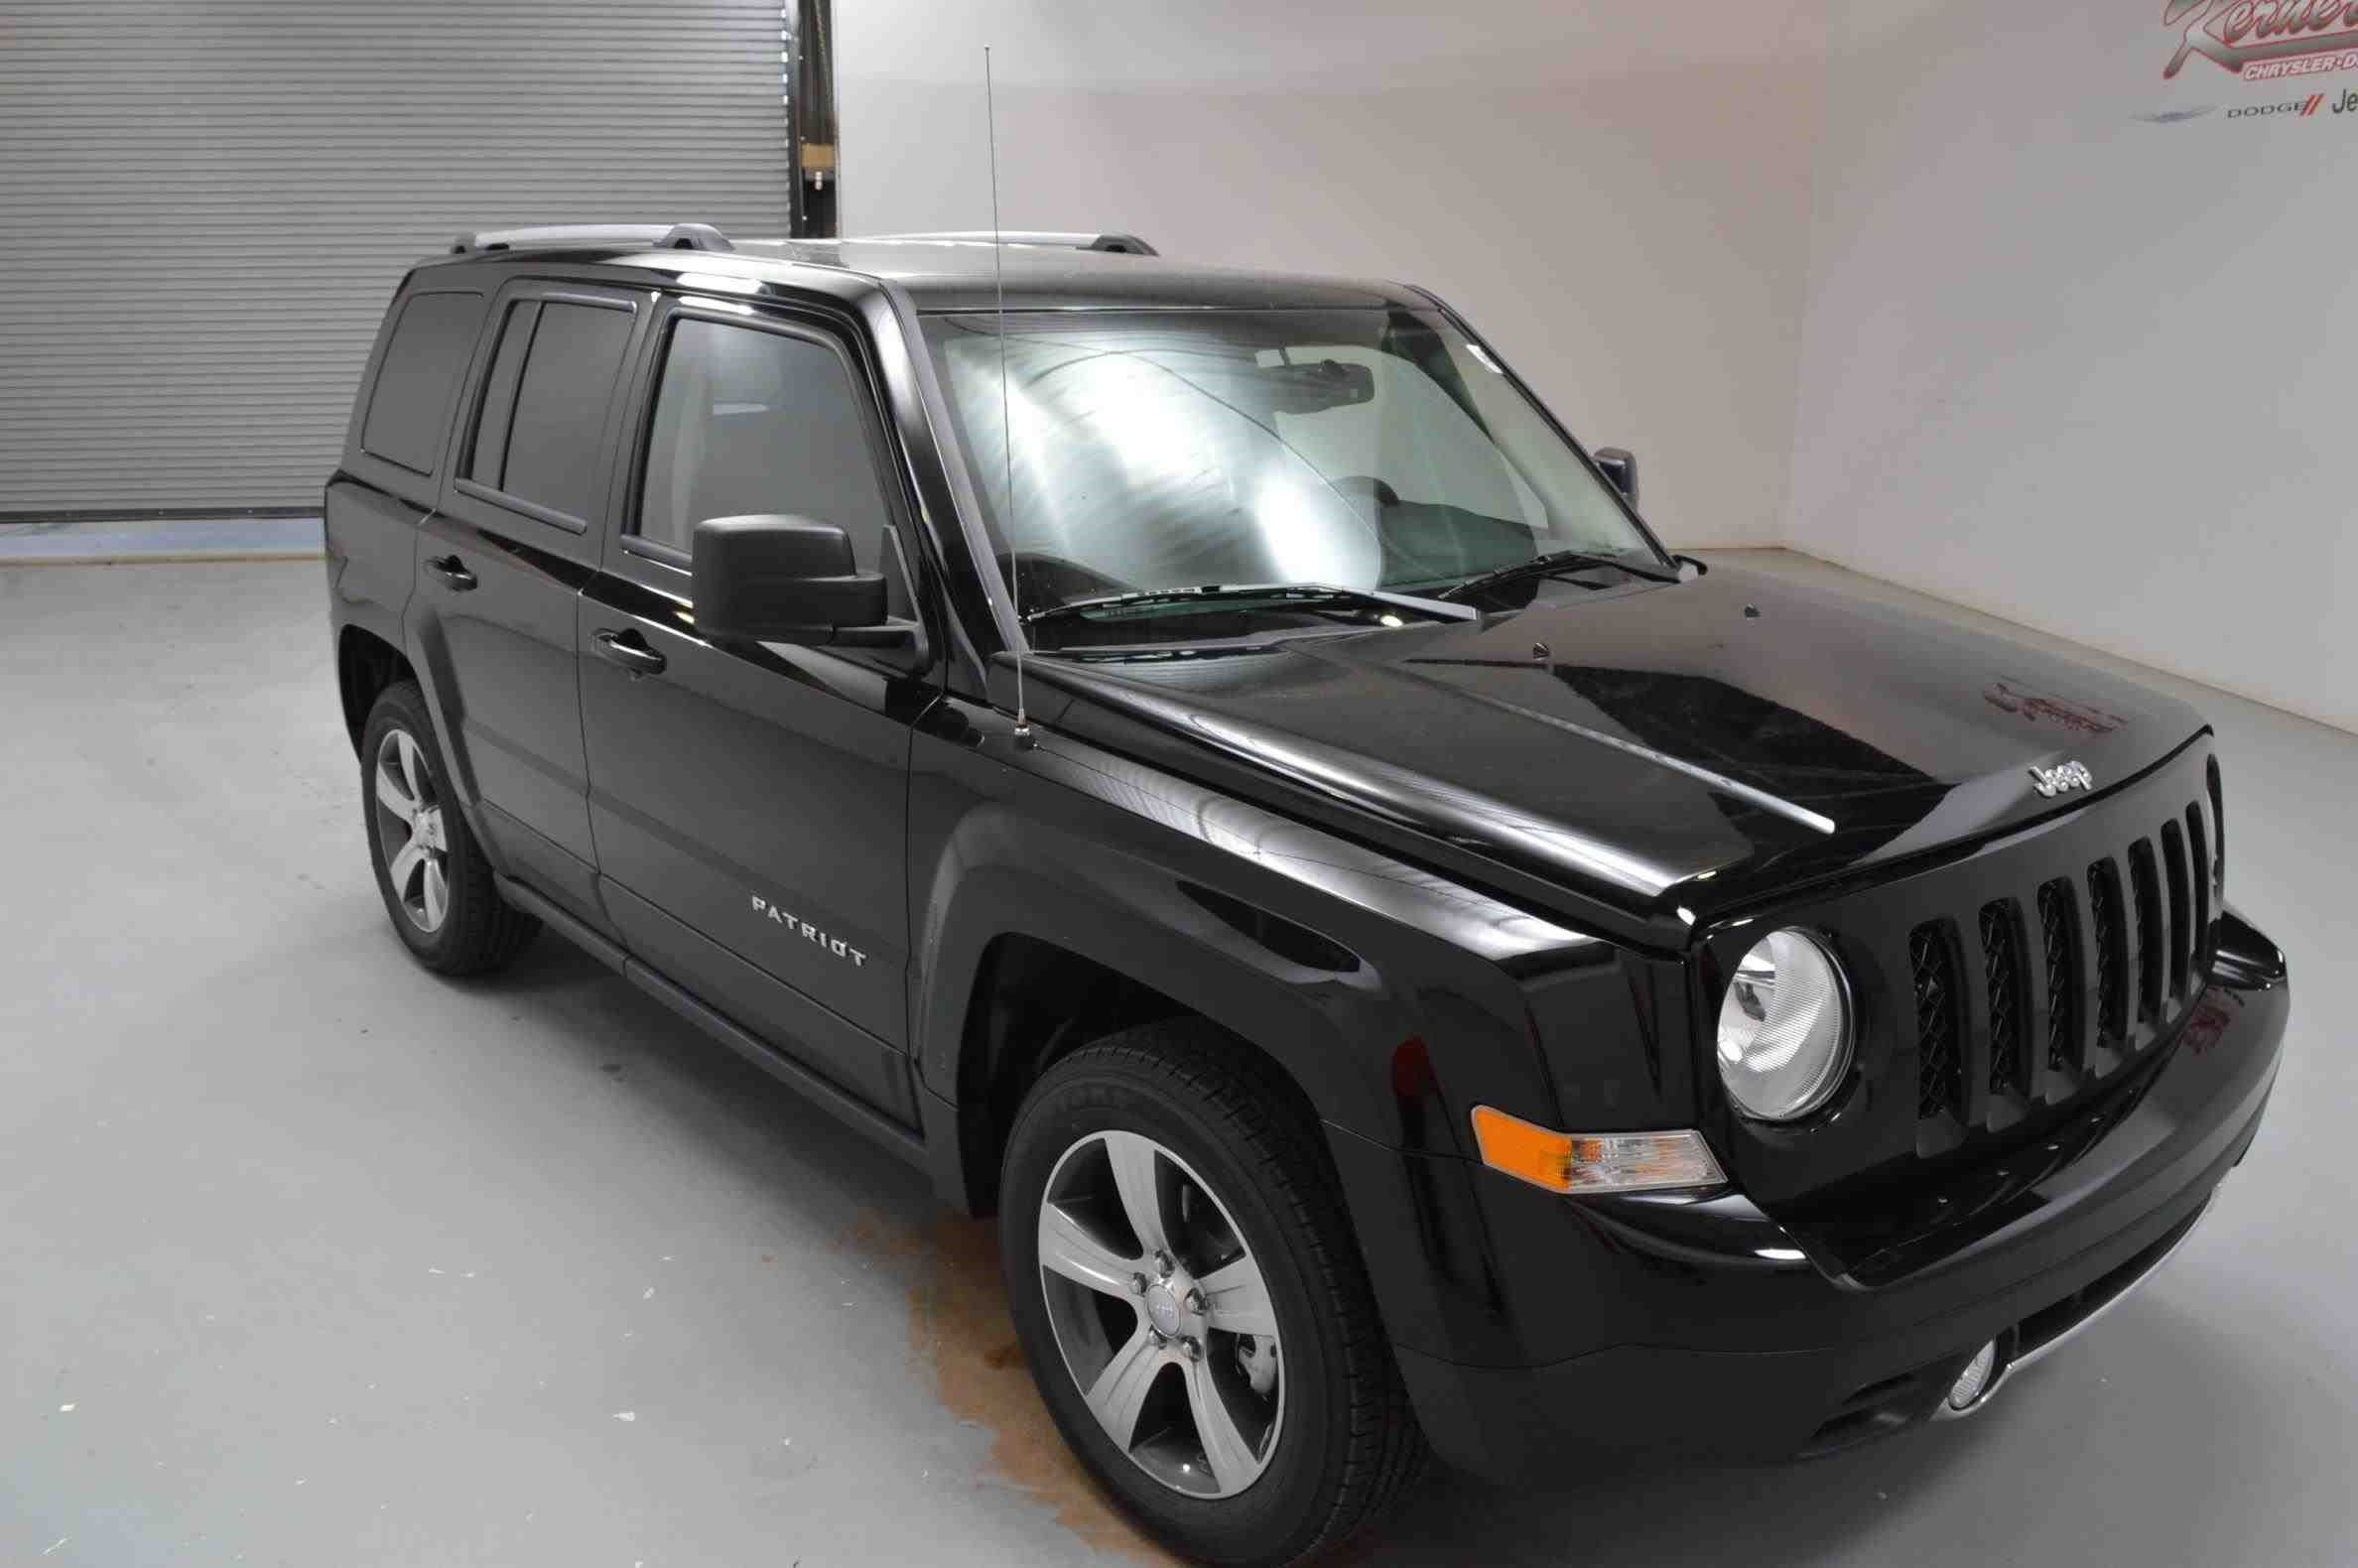 pictures of cars for desktop Jeep, Jeep patriot, Suv